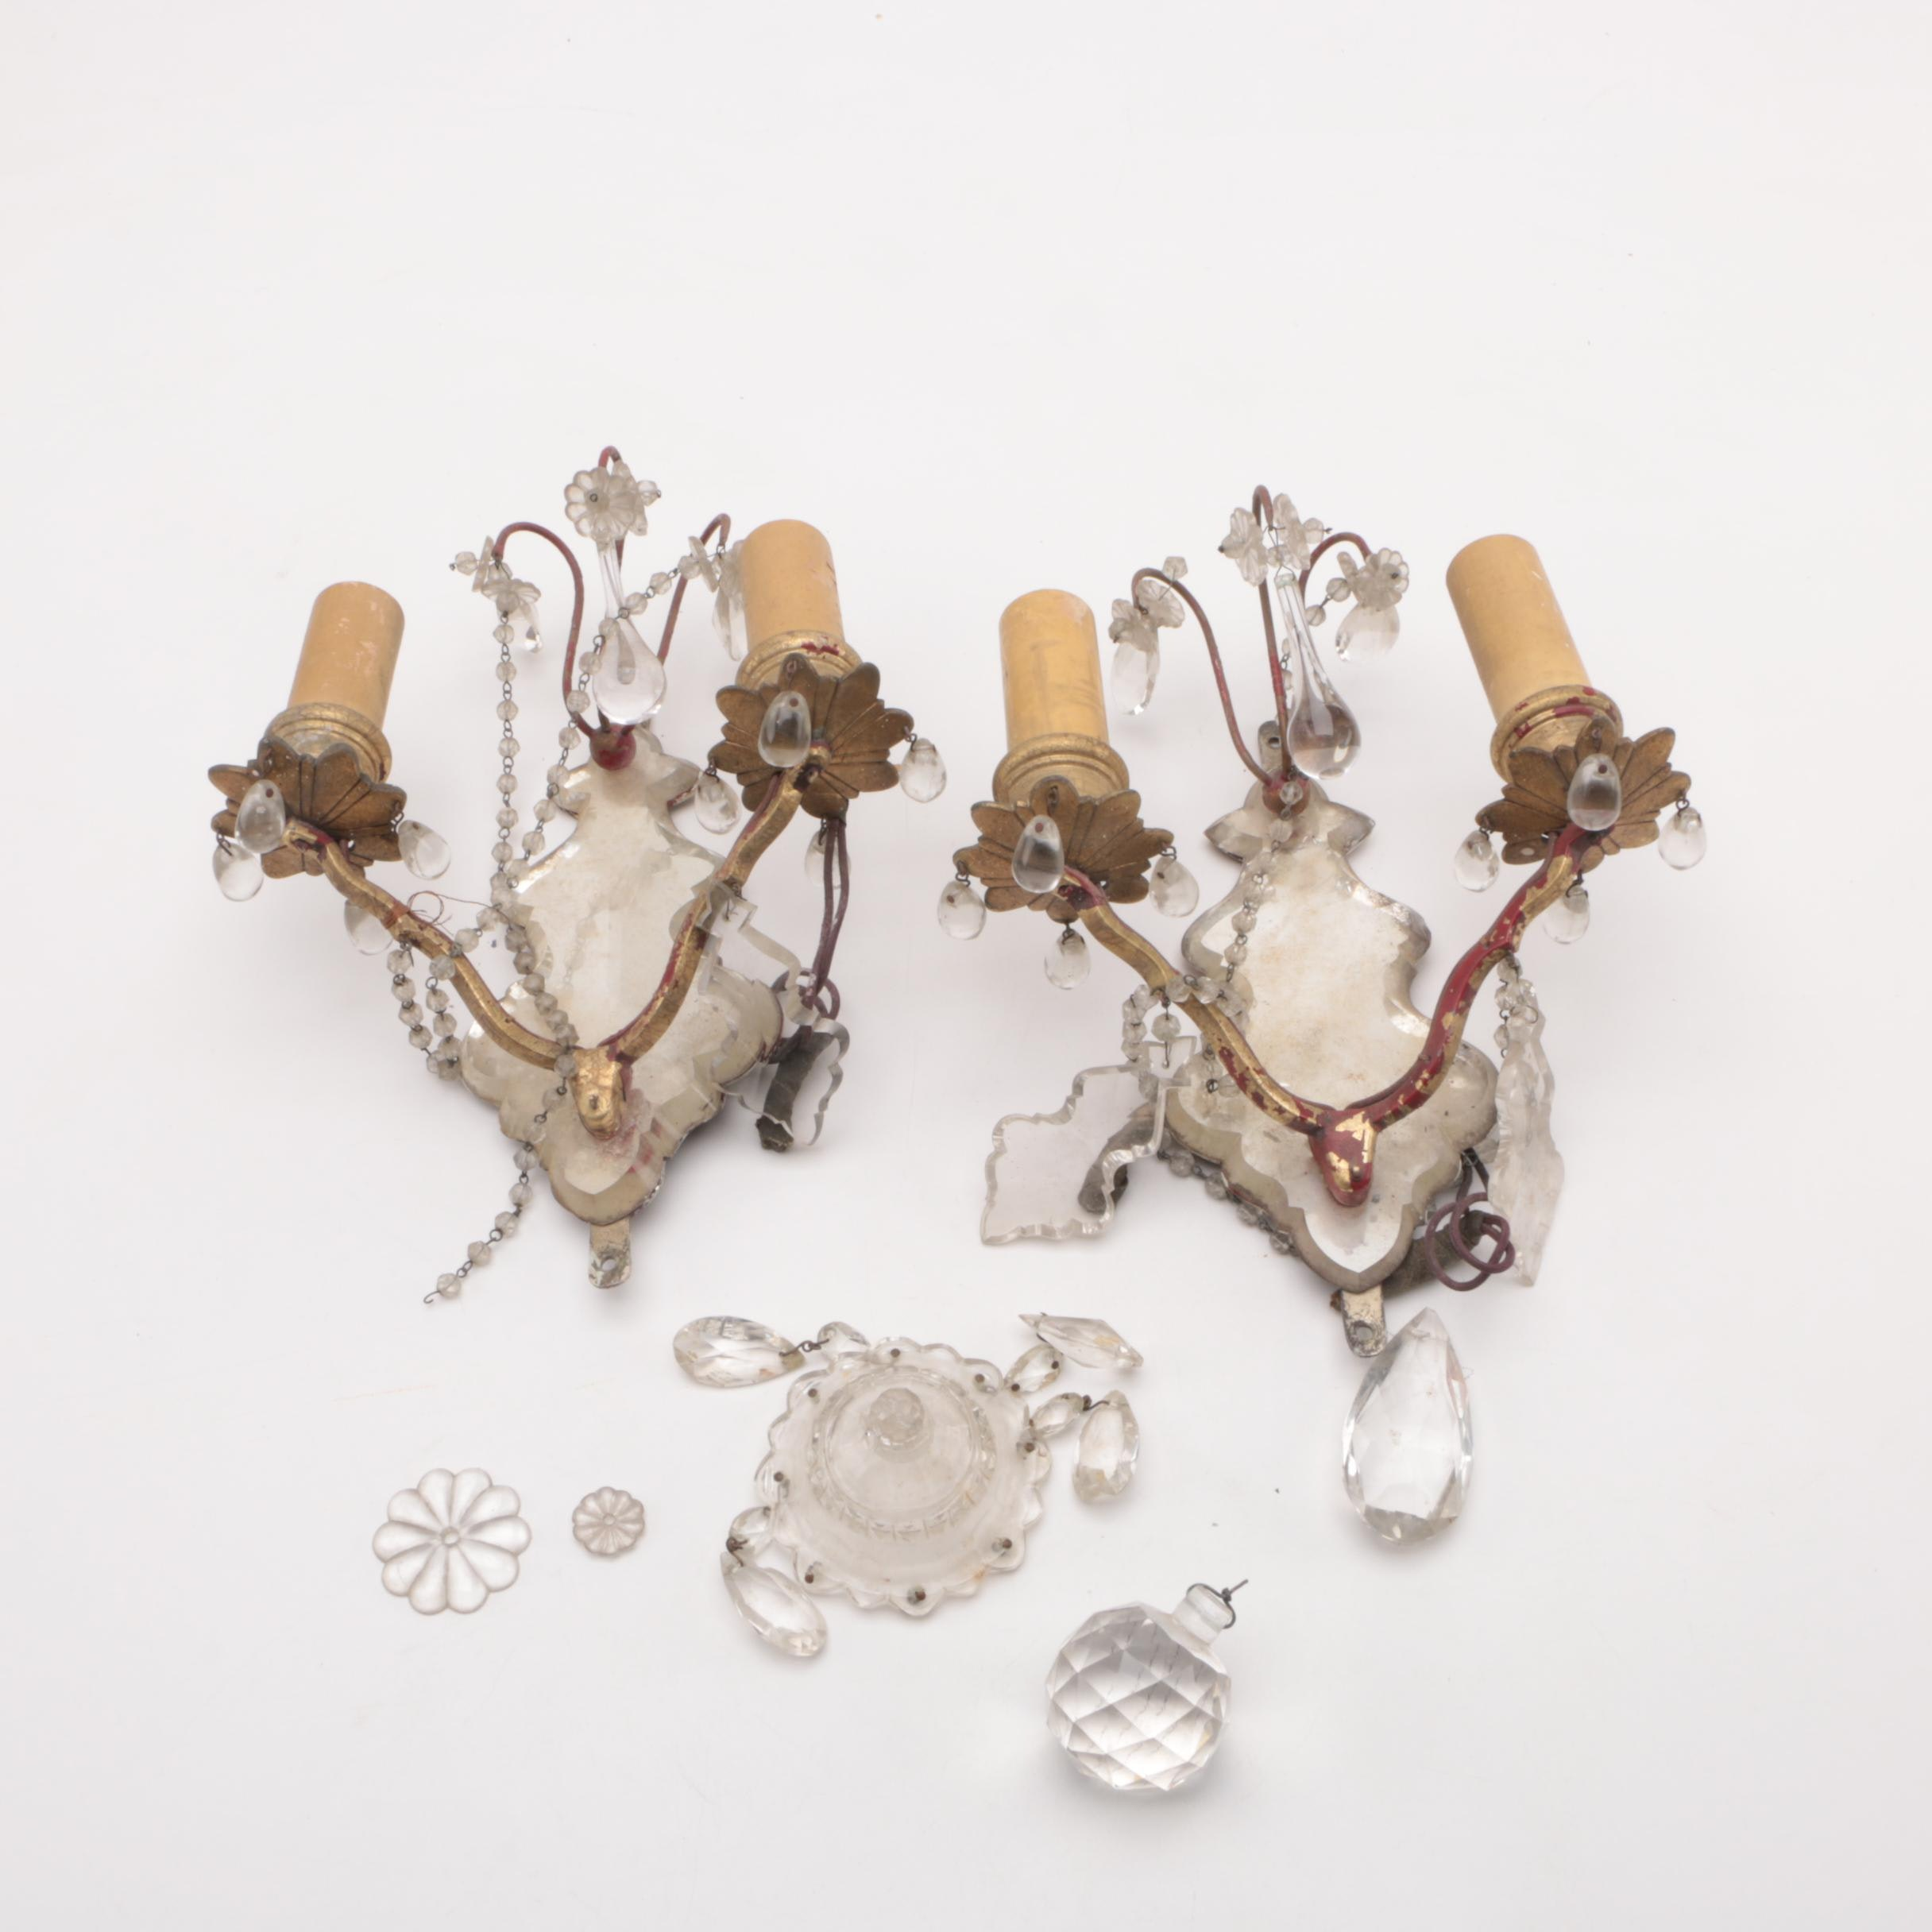 Wall Sconces with Glass and Crystal Details